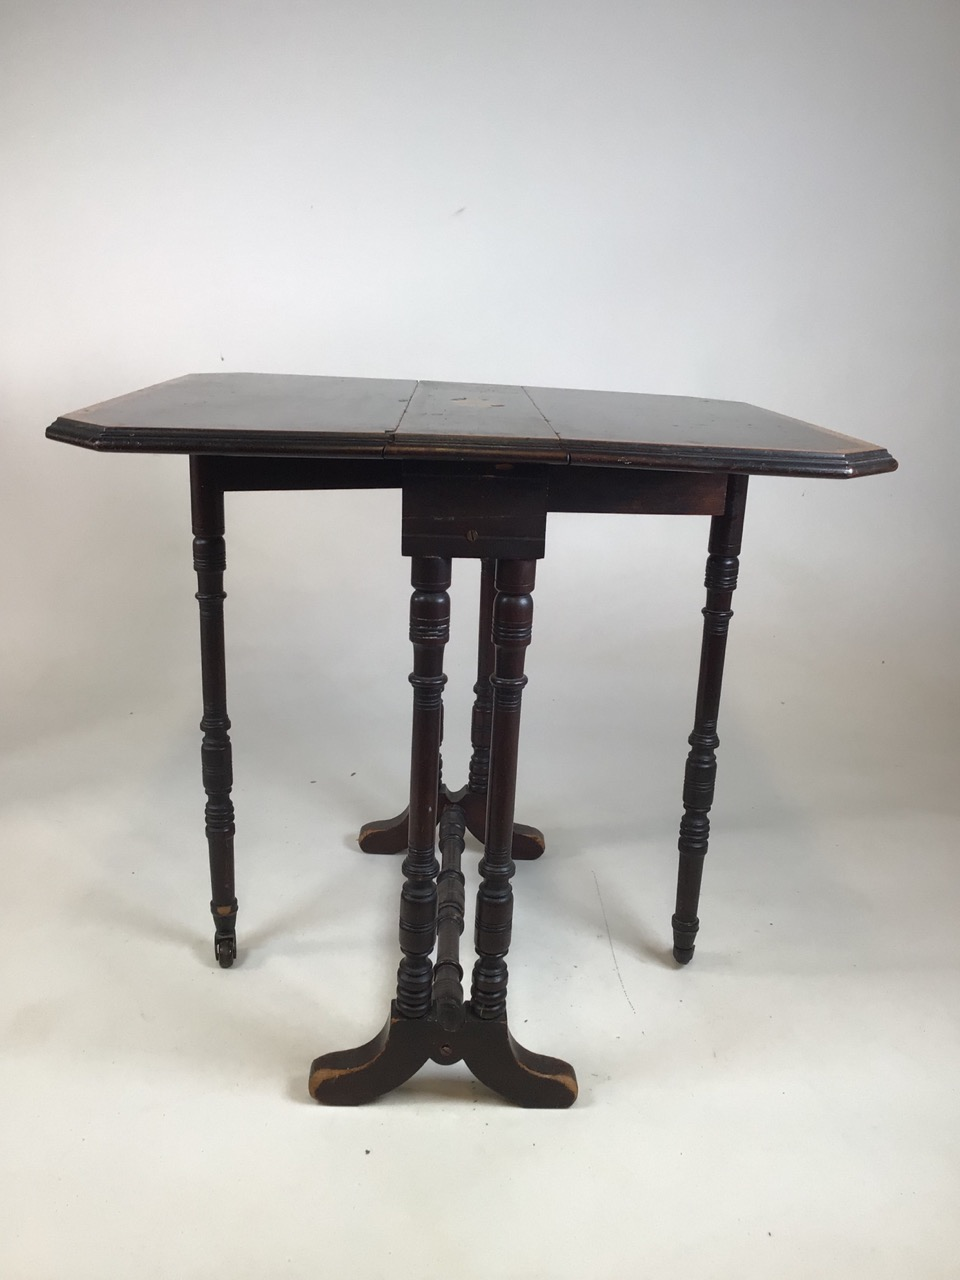 A small Edwardian mahogany inlaid Sutherland table with turned legs and stretcher with ceramic - Image 4 of 9